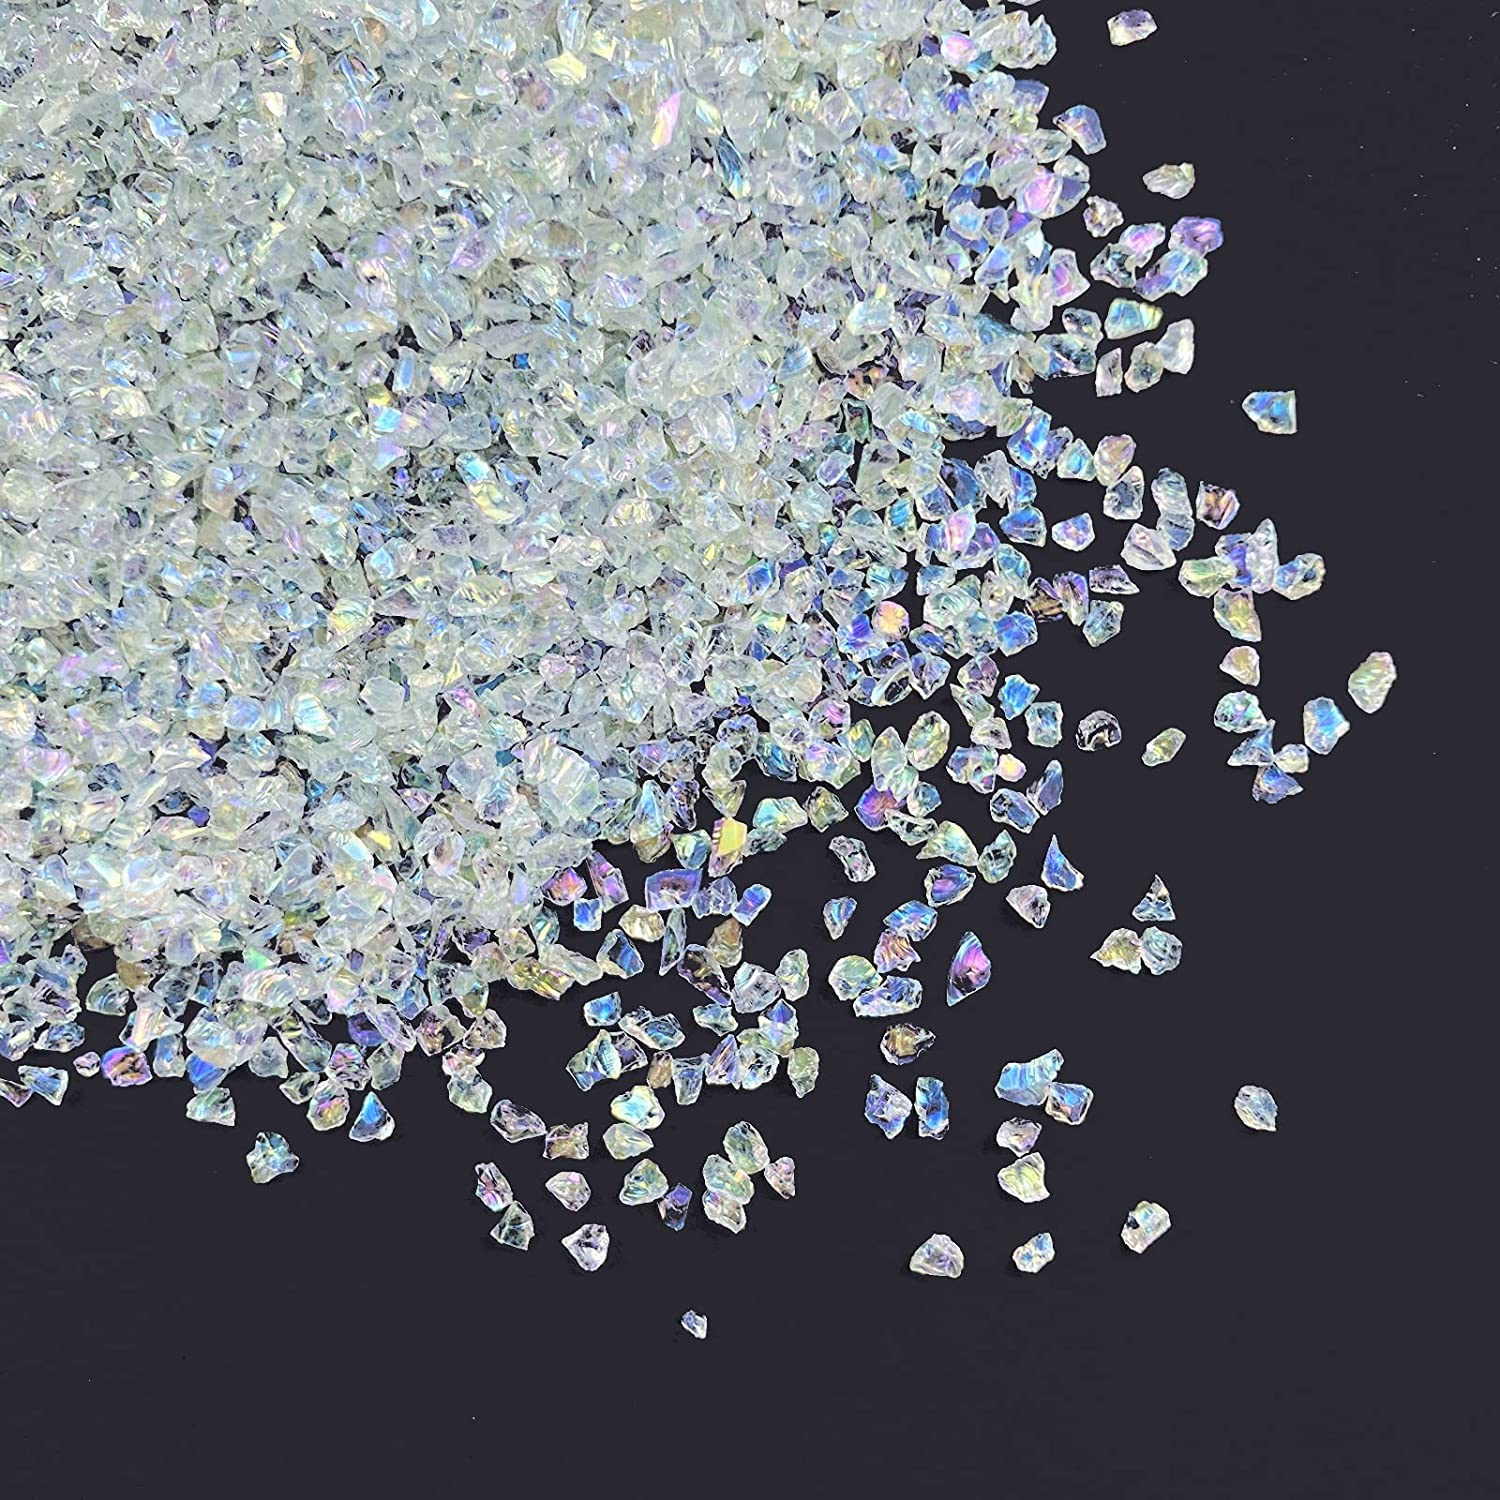 Jmassyang Crushed Glass Irregular Metallic Chips 100g Sprinkles Chunky Glitter for Nail Arts Craft Resin DIY Mobile Phone Case Vase Fillers Jewelry Making Home Decoration (Transparency AB, 2-4mm)